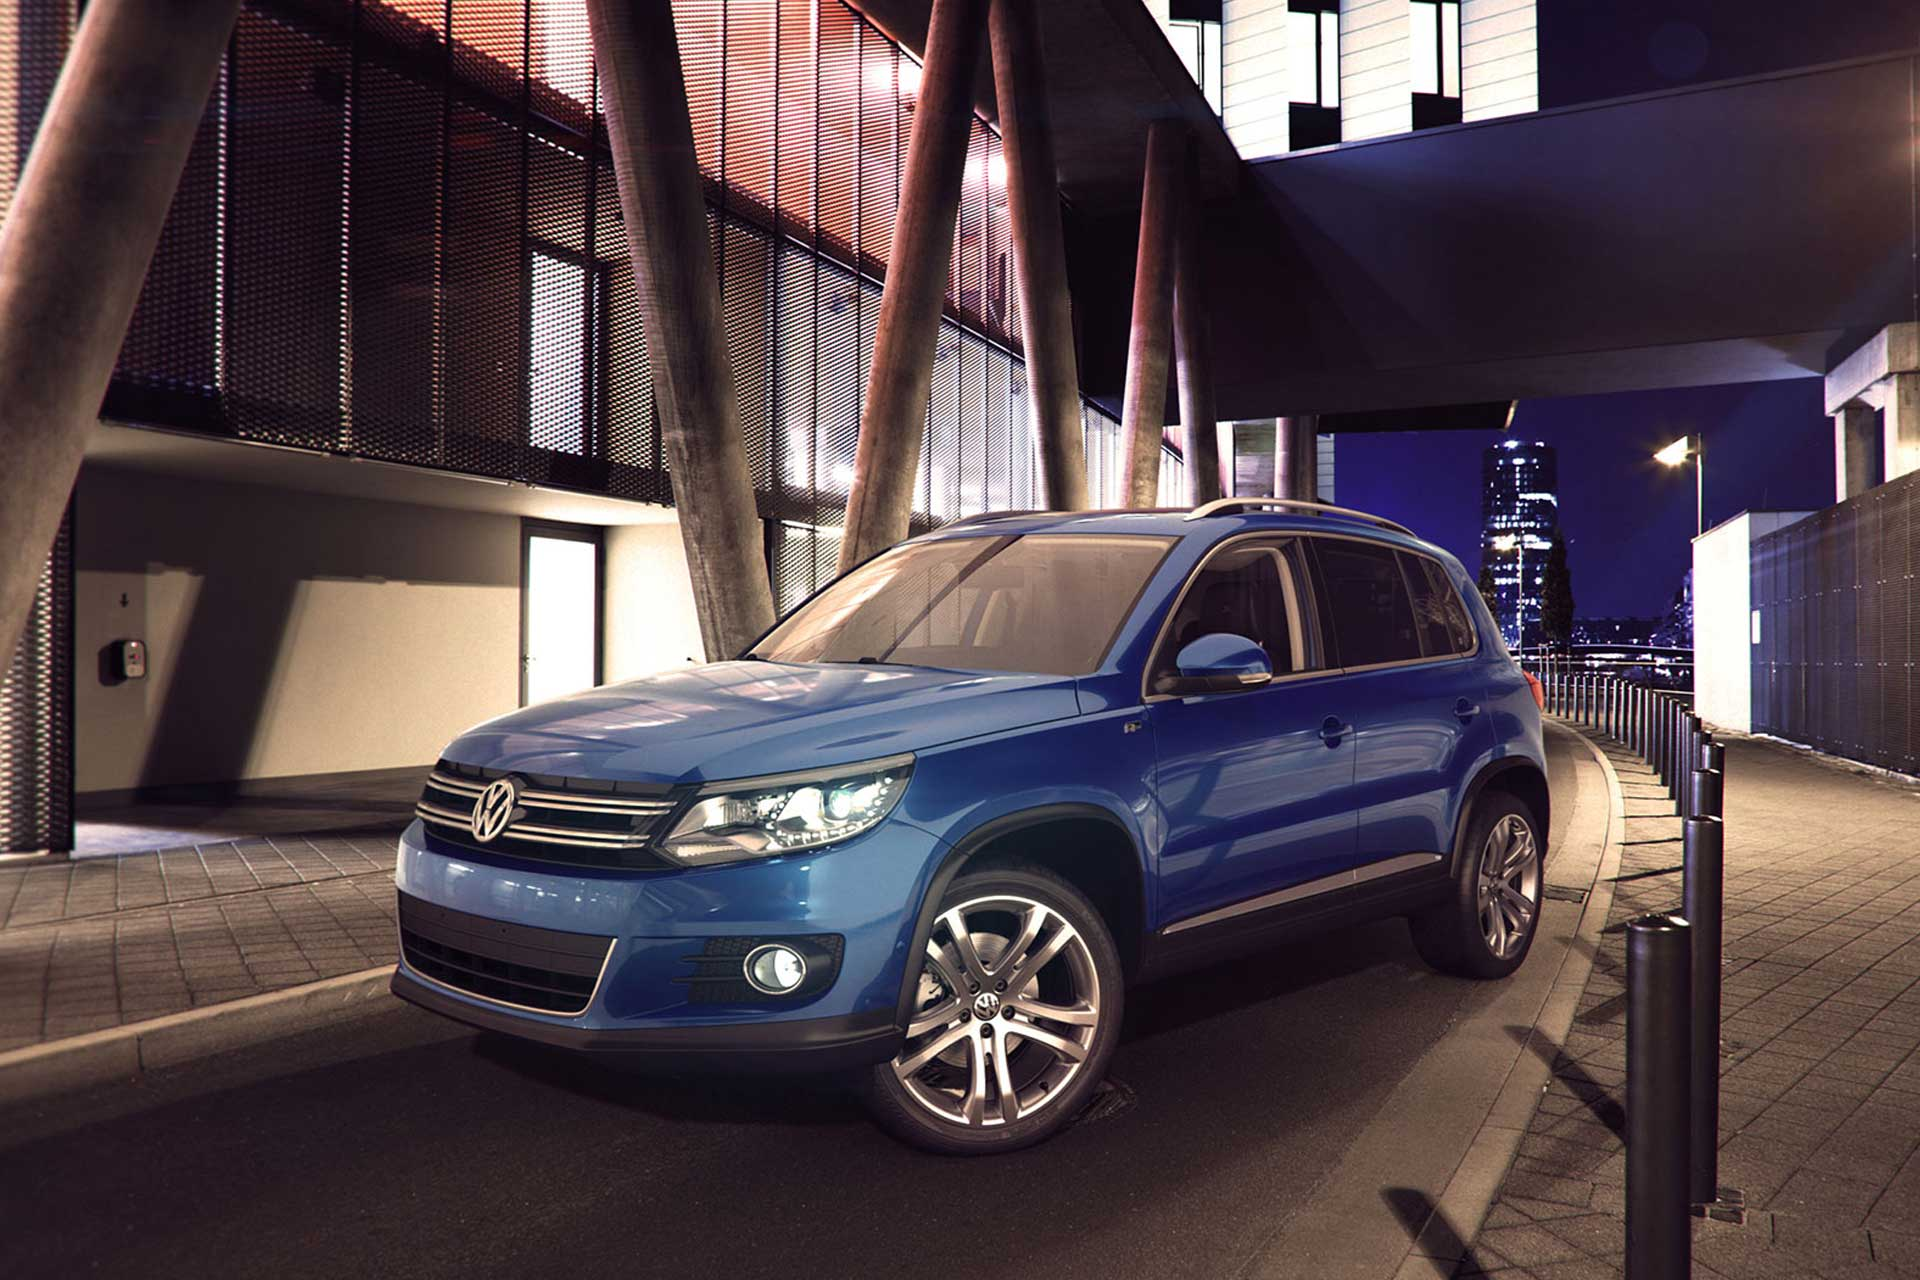 Blue Volkswagen Tiguan car parked in the city